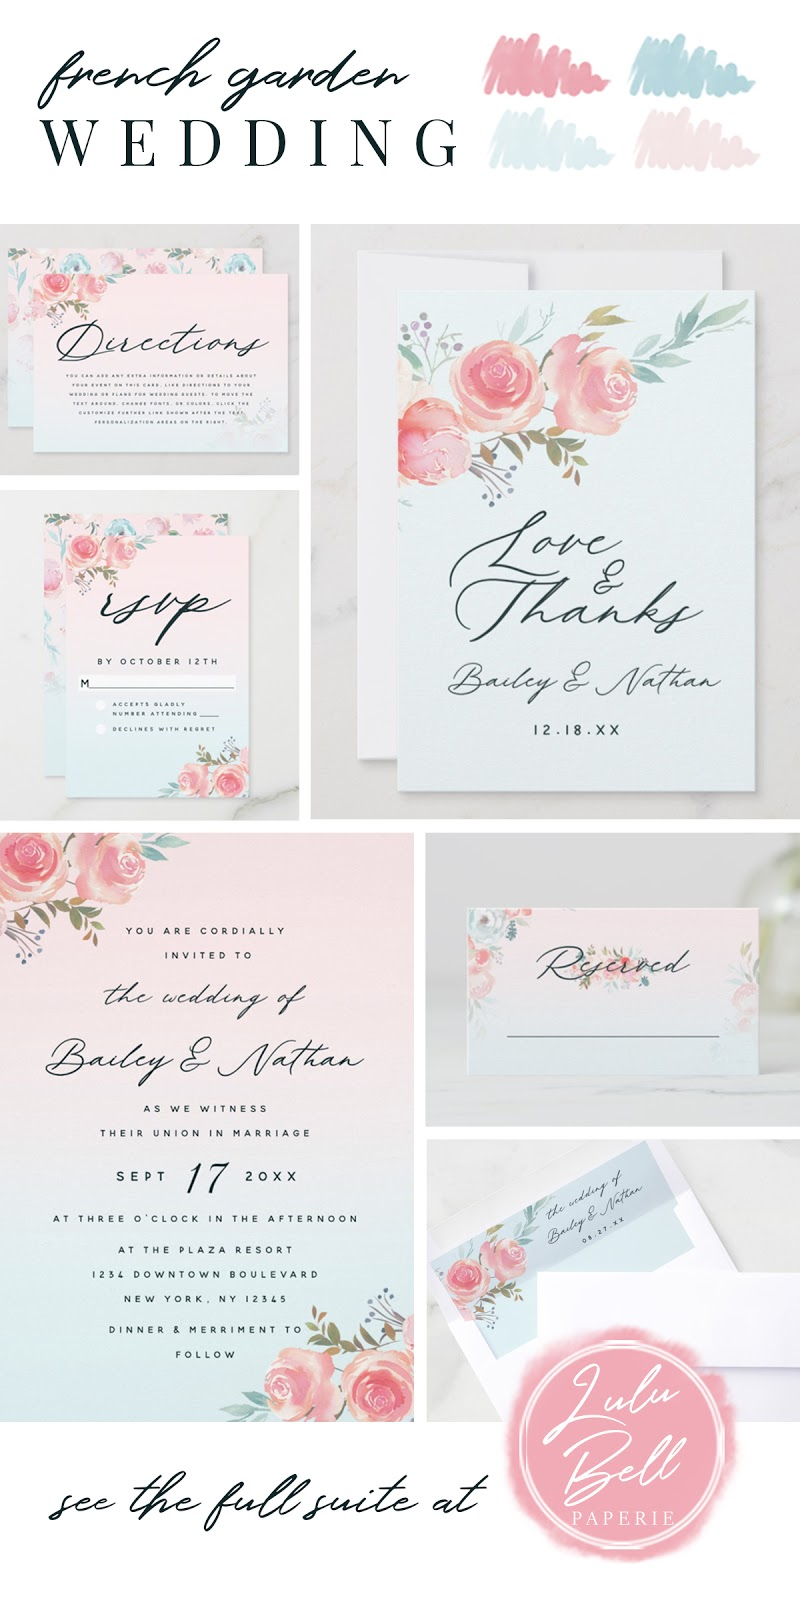 French Garden Floral Wedding Suite - Wedding Directions Card, Love and Thanks Cards, RSVP Cards, Invitations, Reserved Place Cards, and Envelope Liners